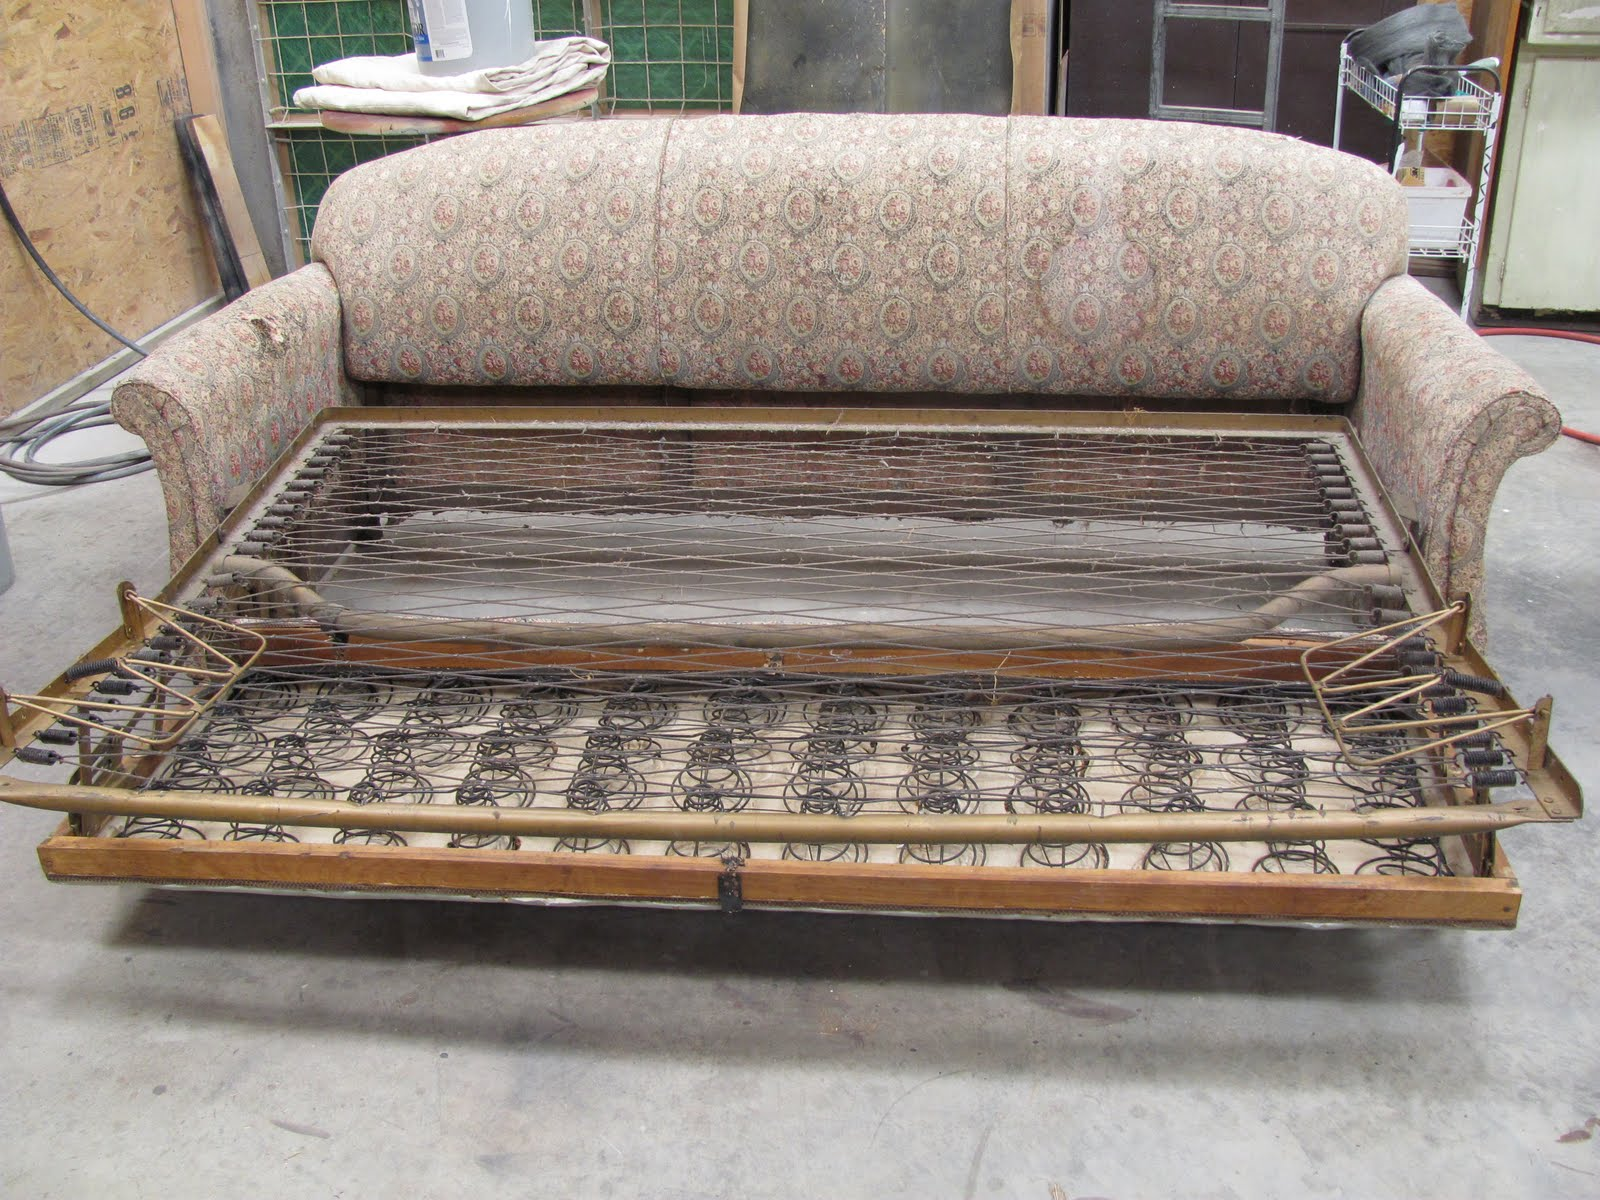 Thomas Nelson Furniture Restoration Antique Sleeper Sofa Frame Repair